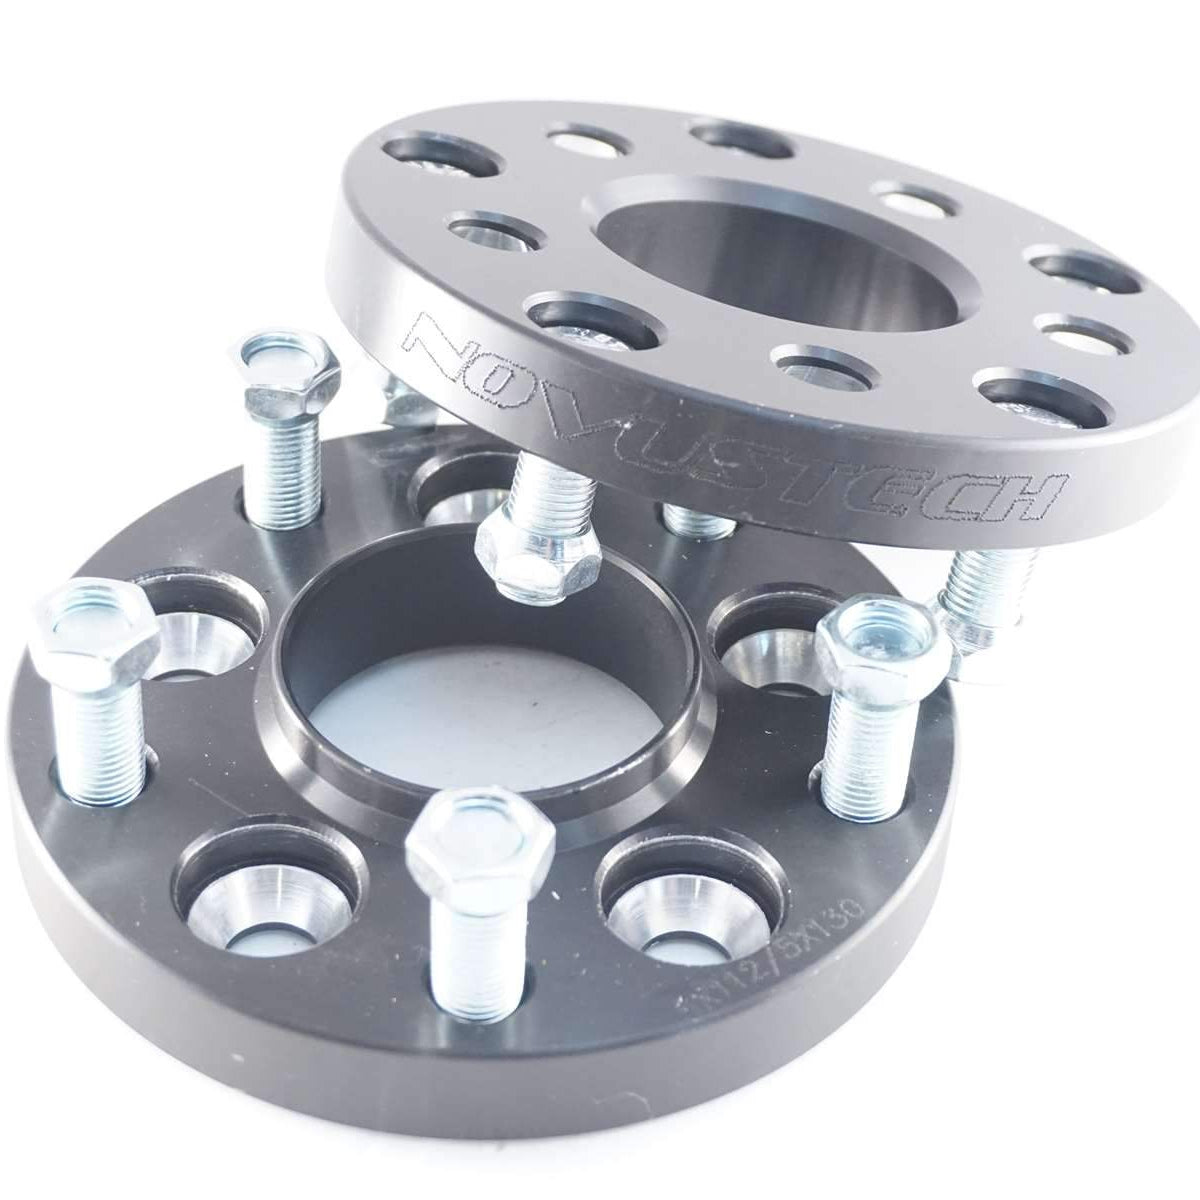 Wheel Adapters: 5x112 to 5x130 - 20mm